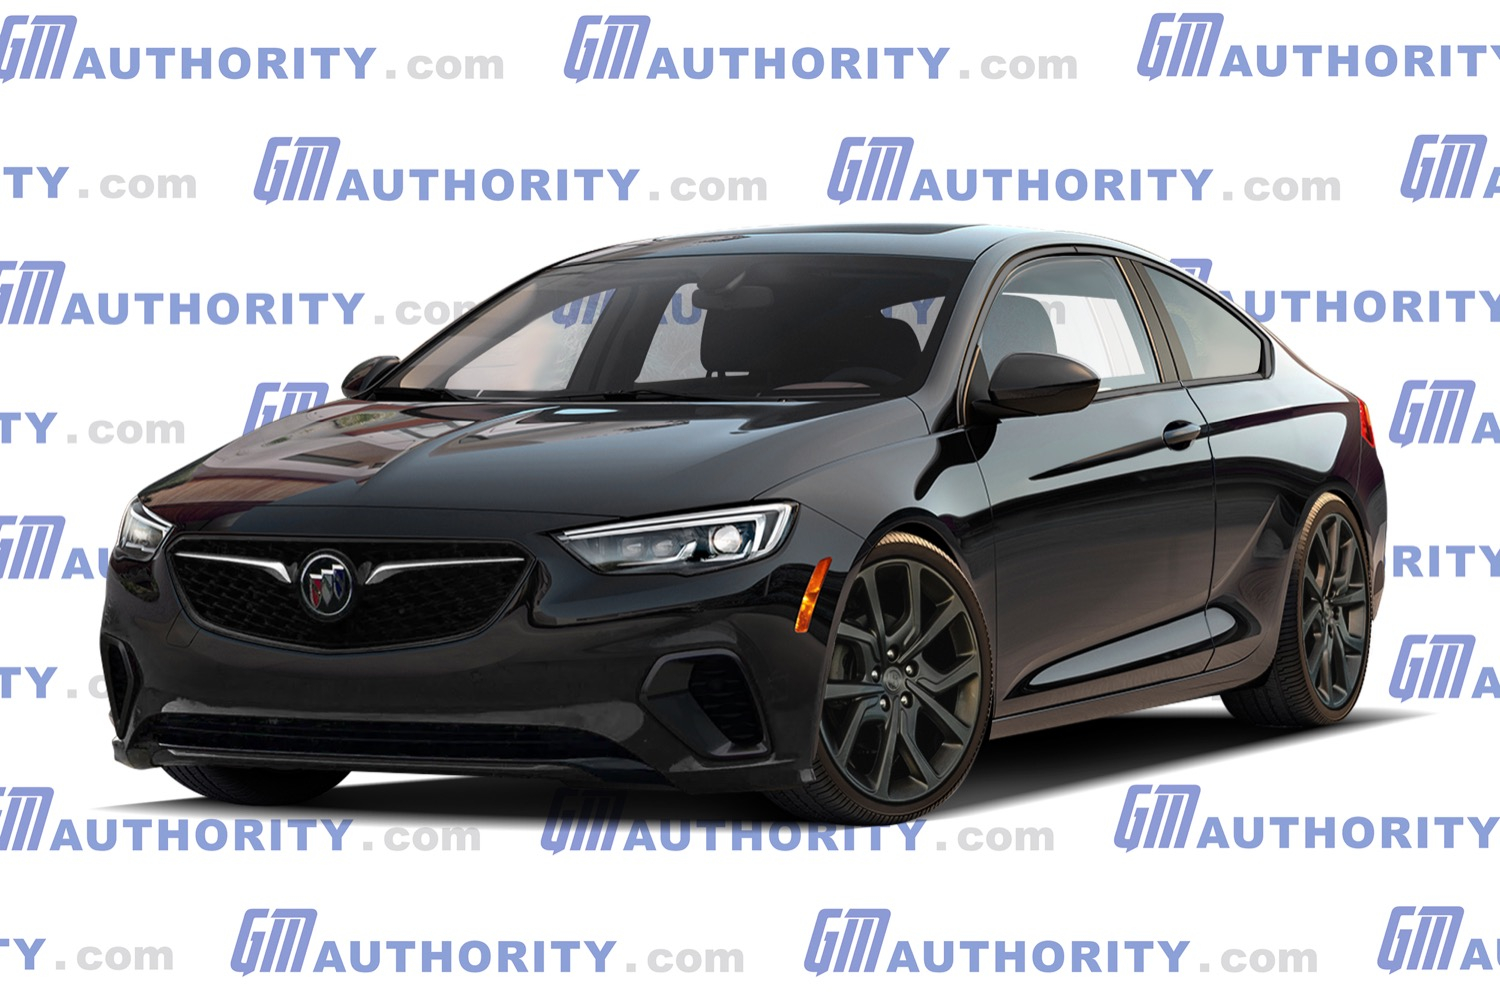 Modern Buick Regal Gnx Rendered | Gm Authority 2022 Buick Regal Pictures, Performance, Review